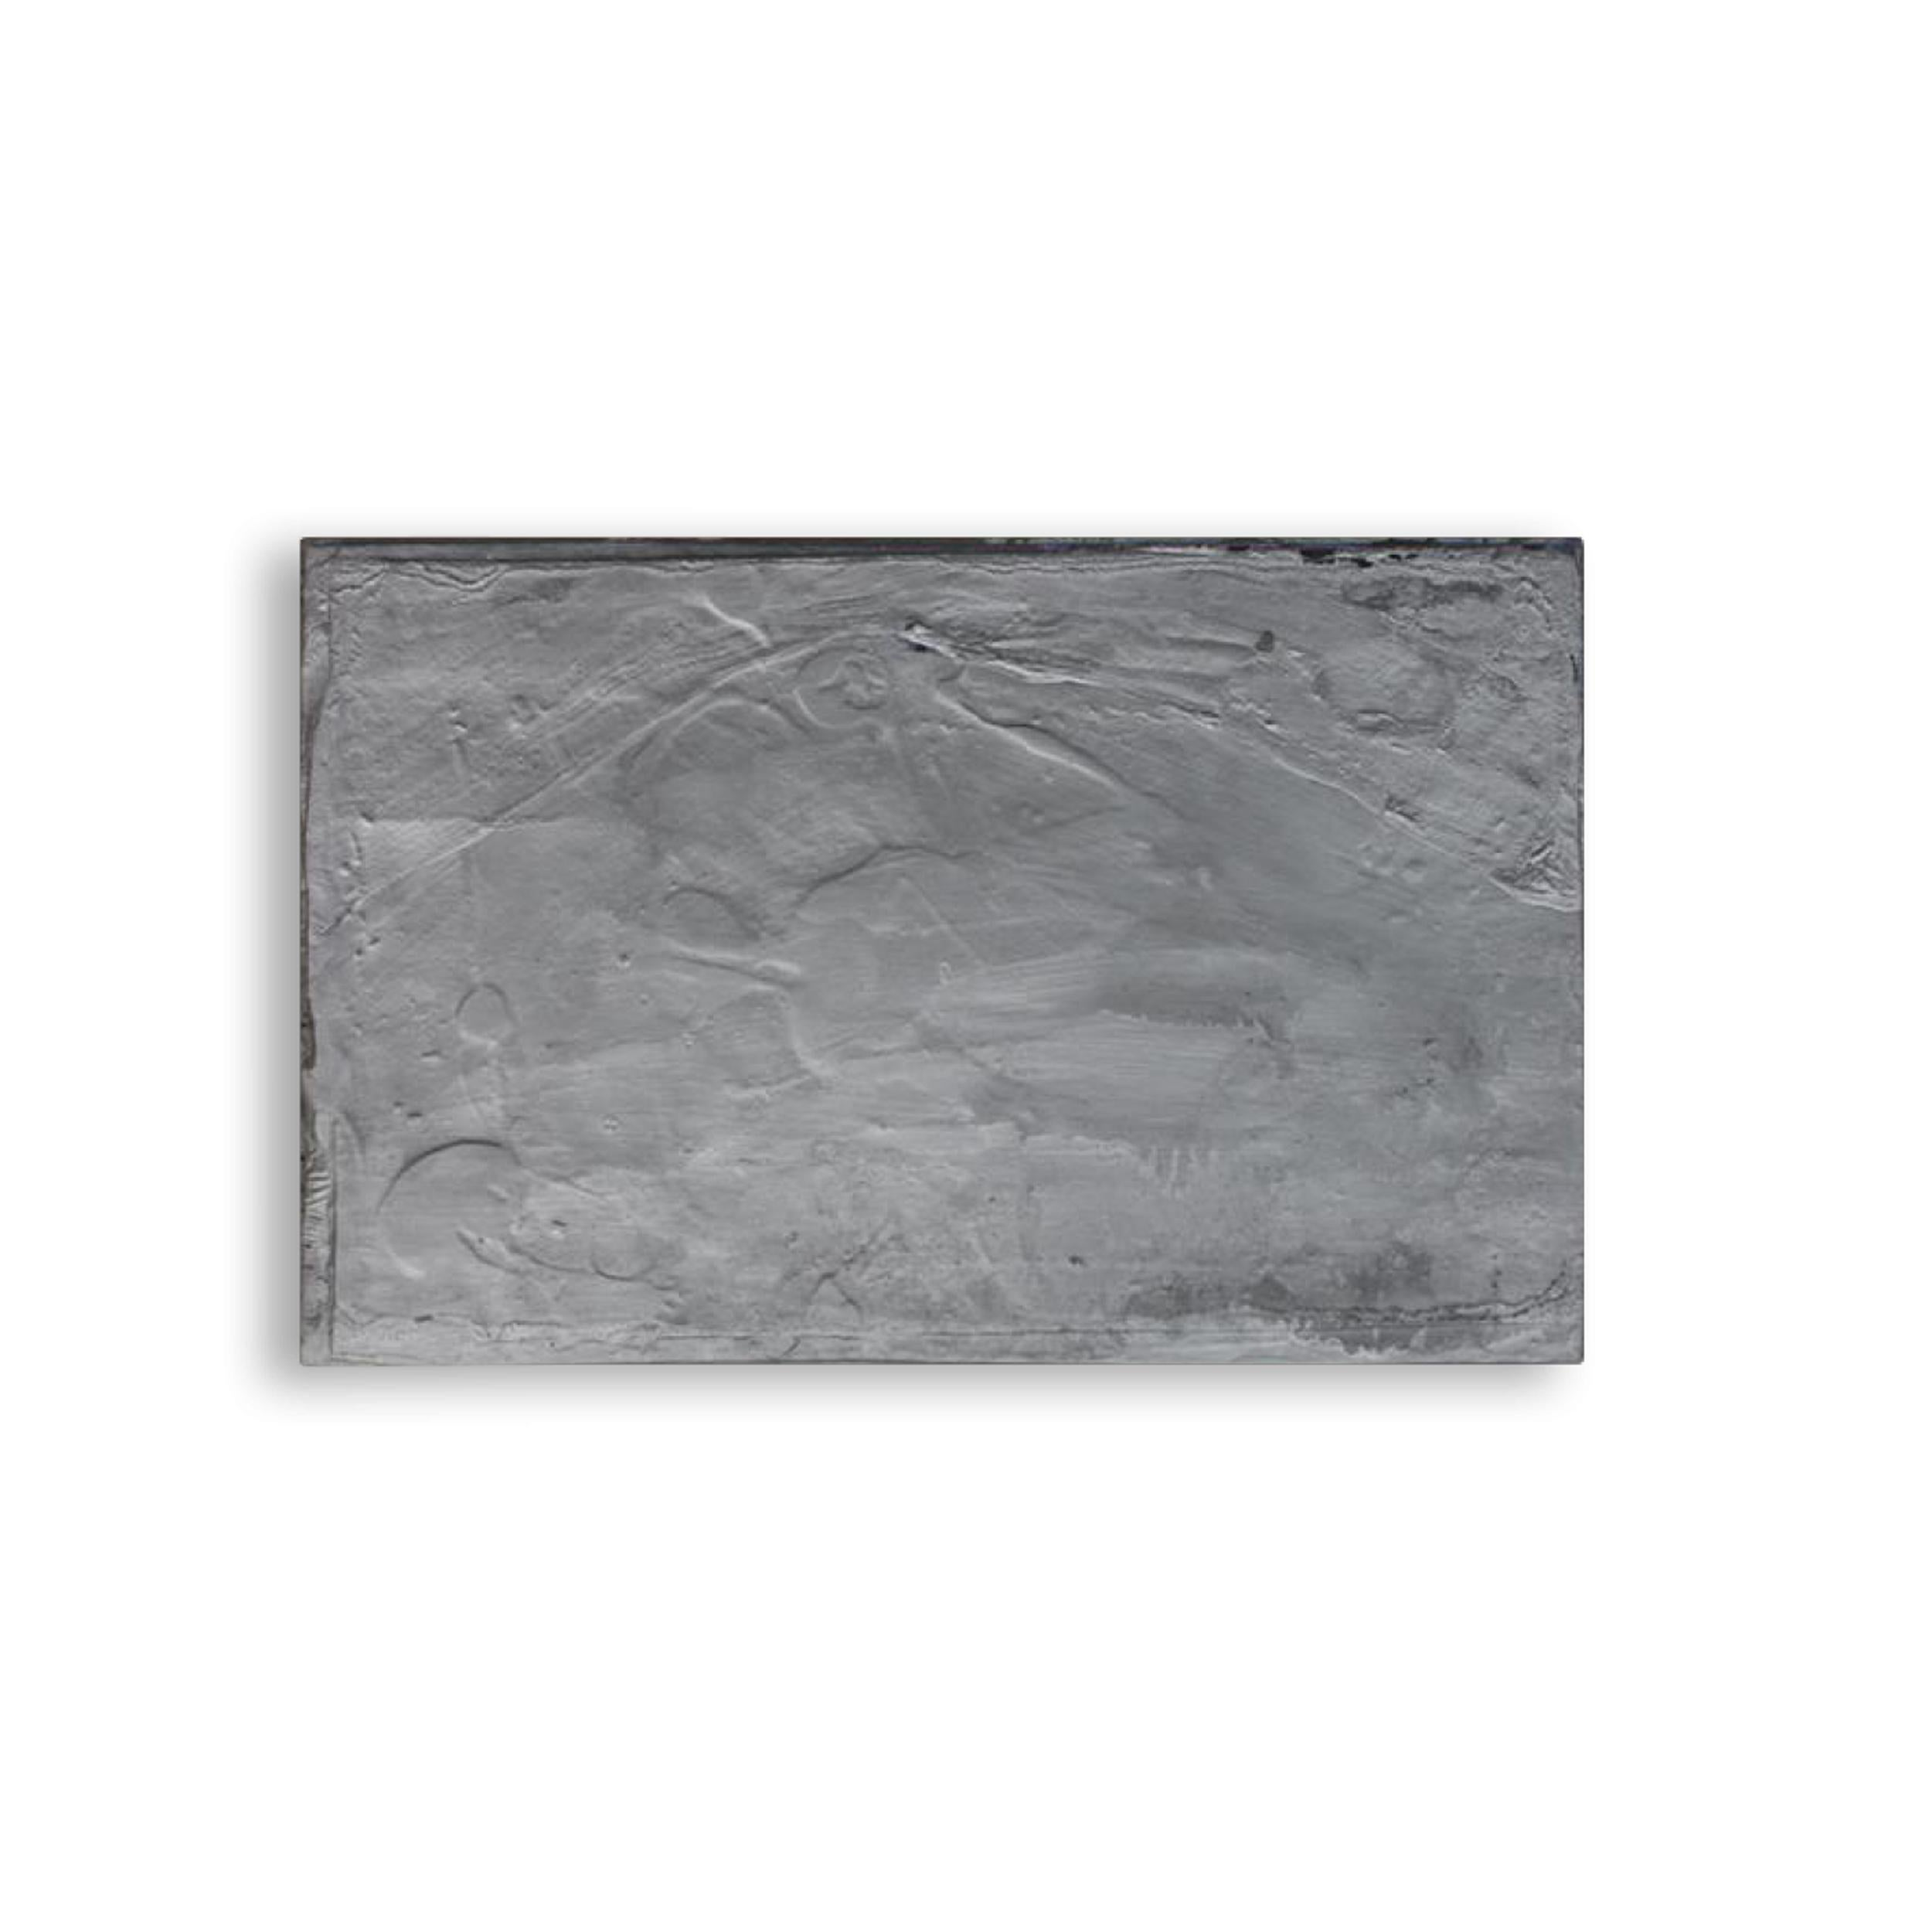 2206 SILVER PAINTING